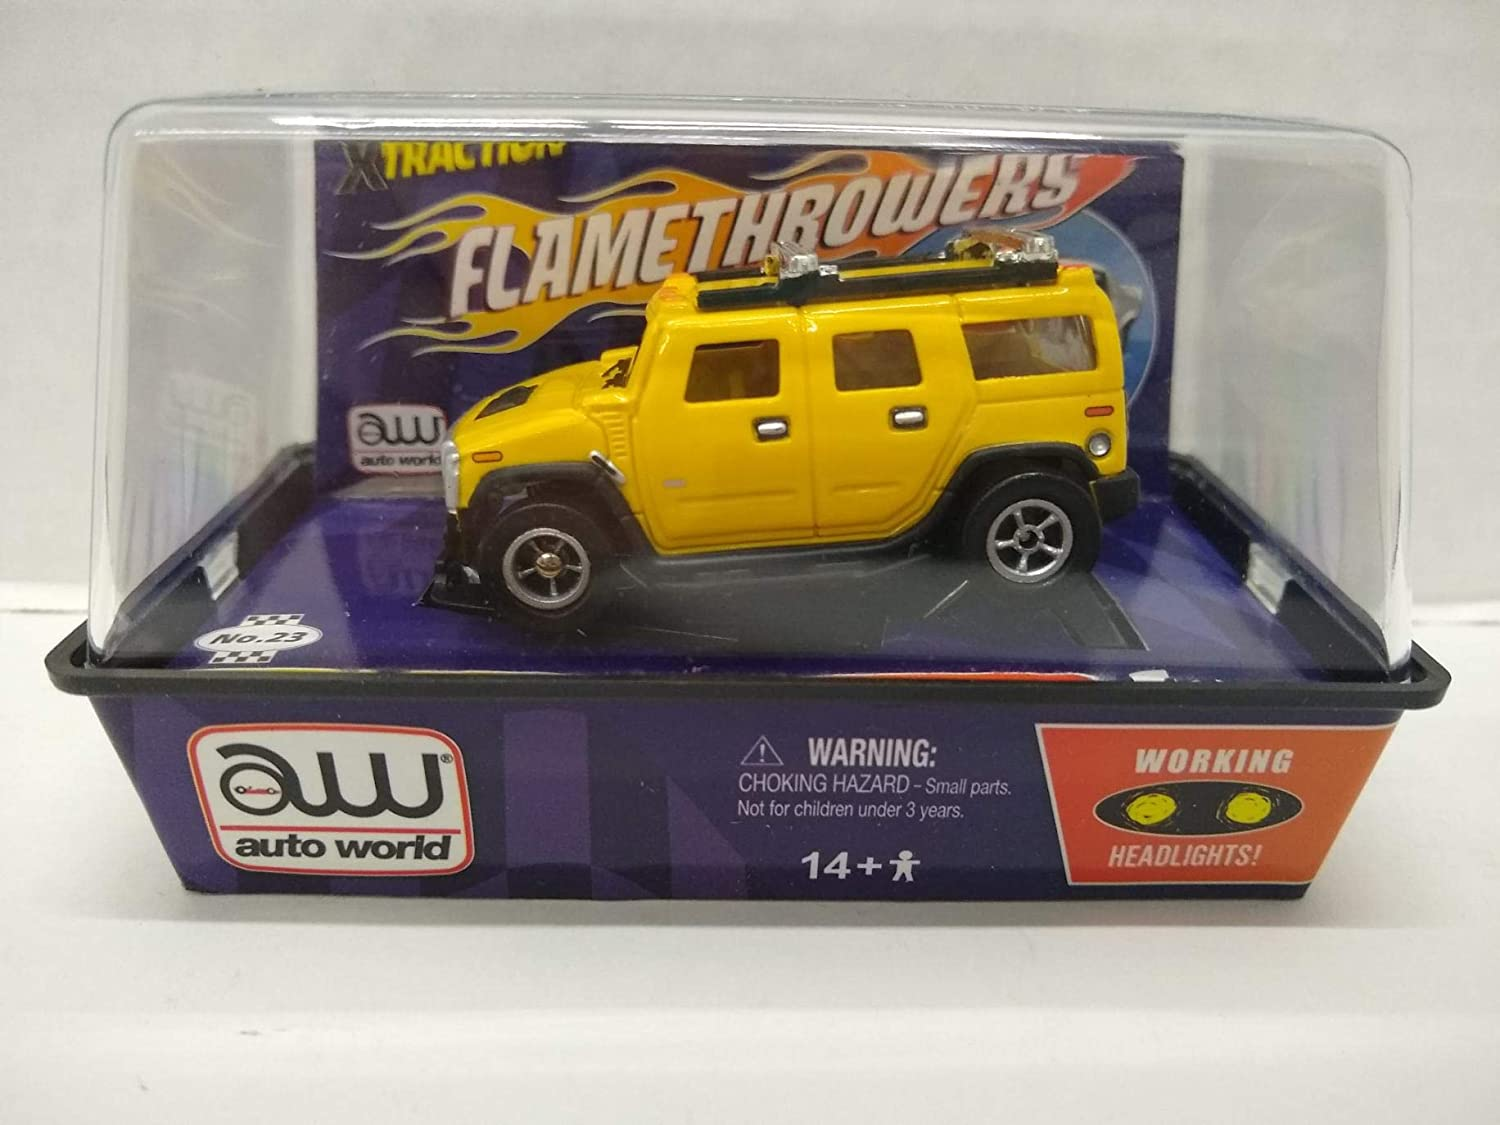 Auto World SC122 Hummer H2 HO Scale Electric Slot Car - Yellow